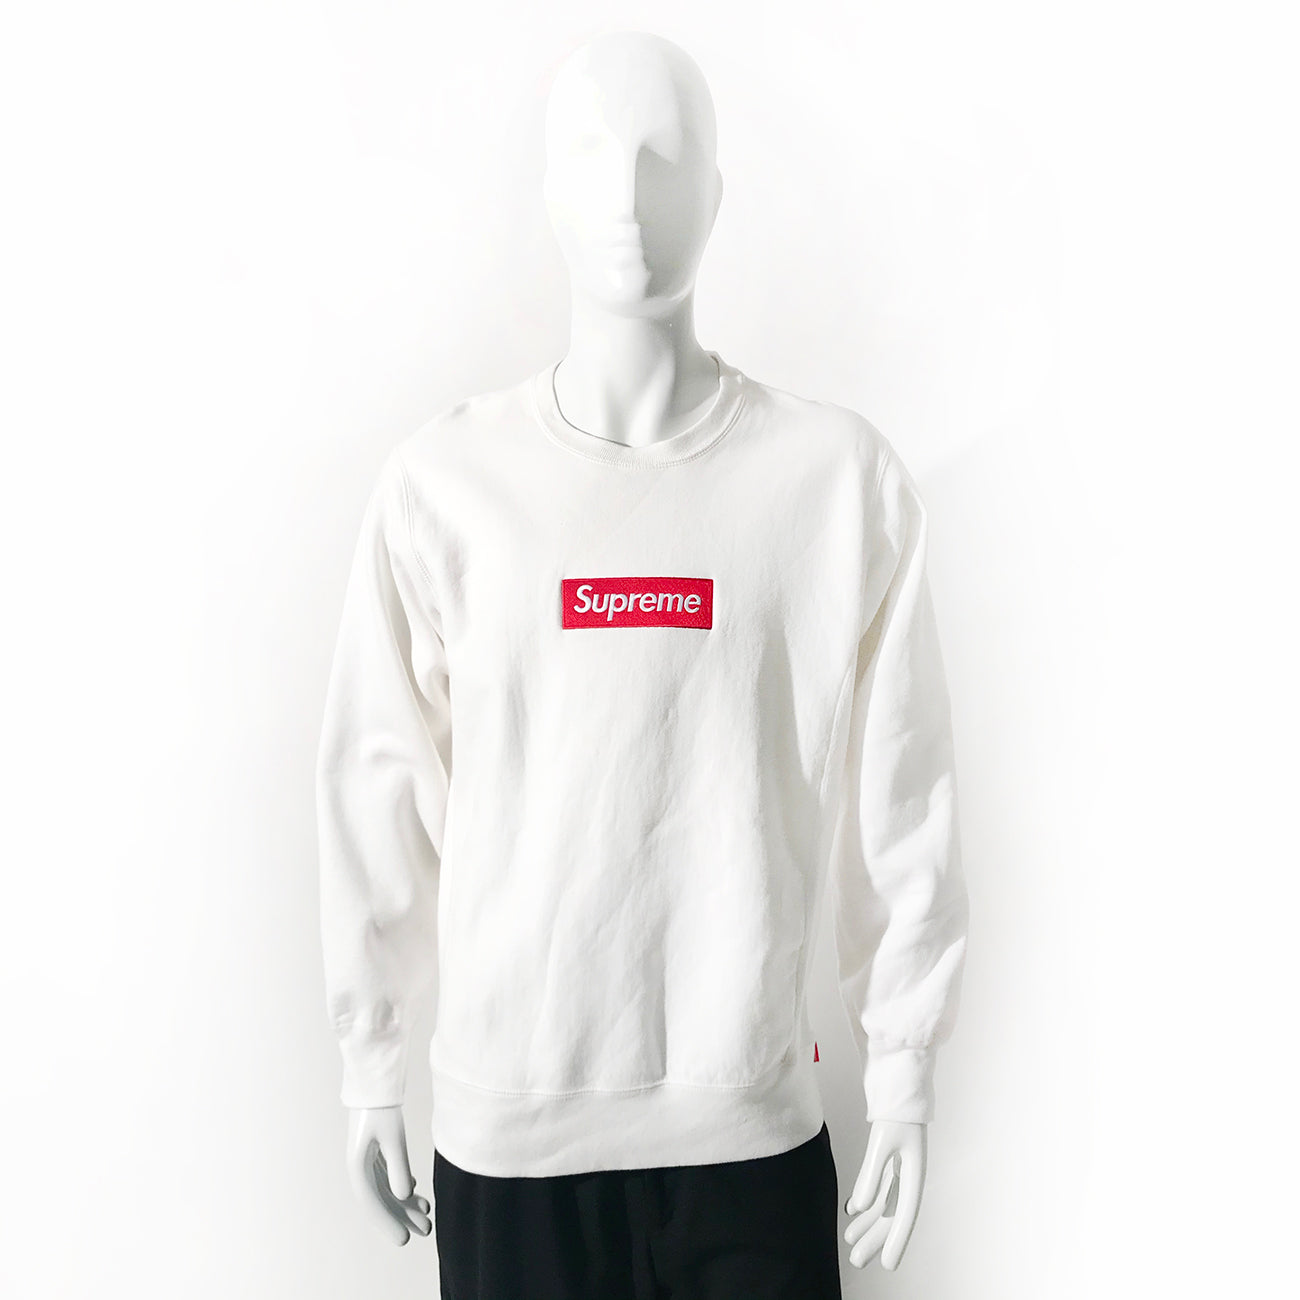 Supreme Logo Crew Neck Sweatshirt